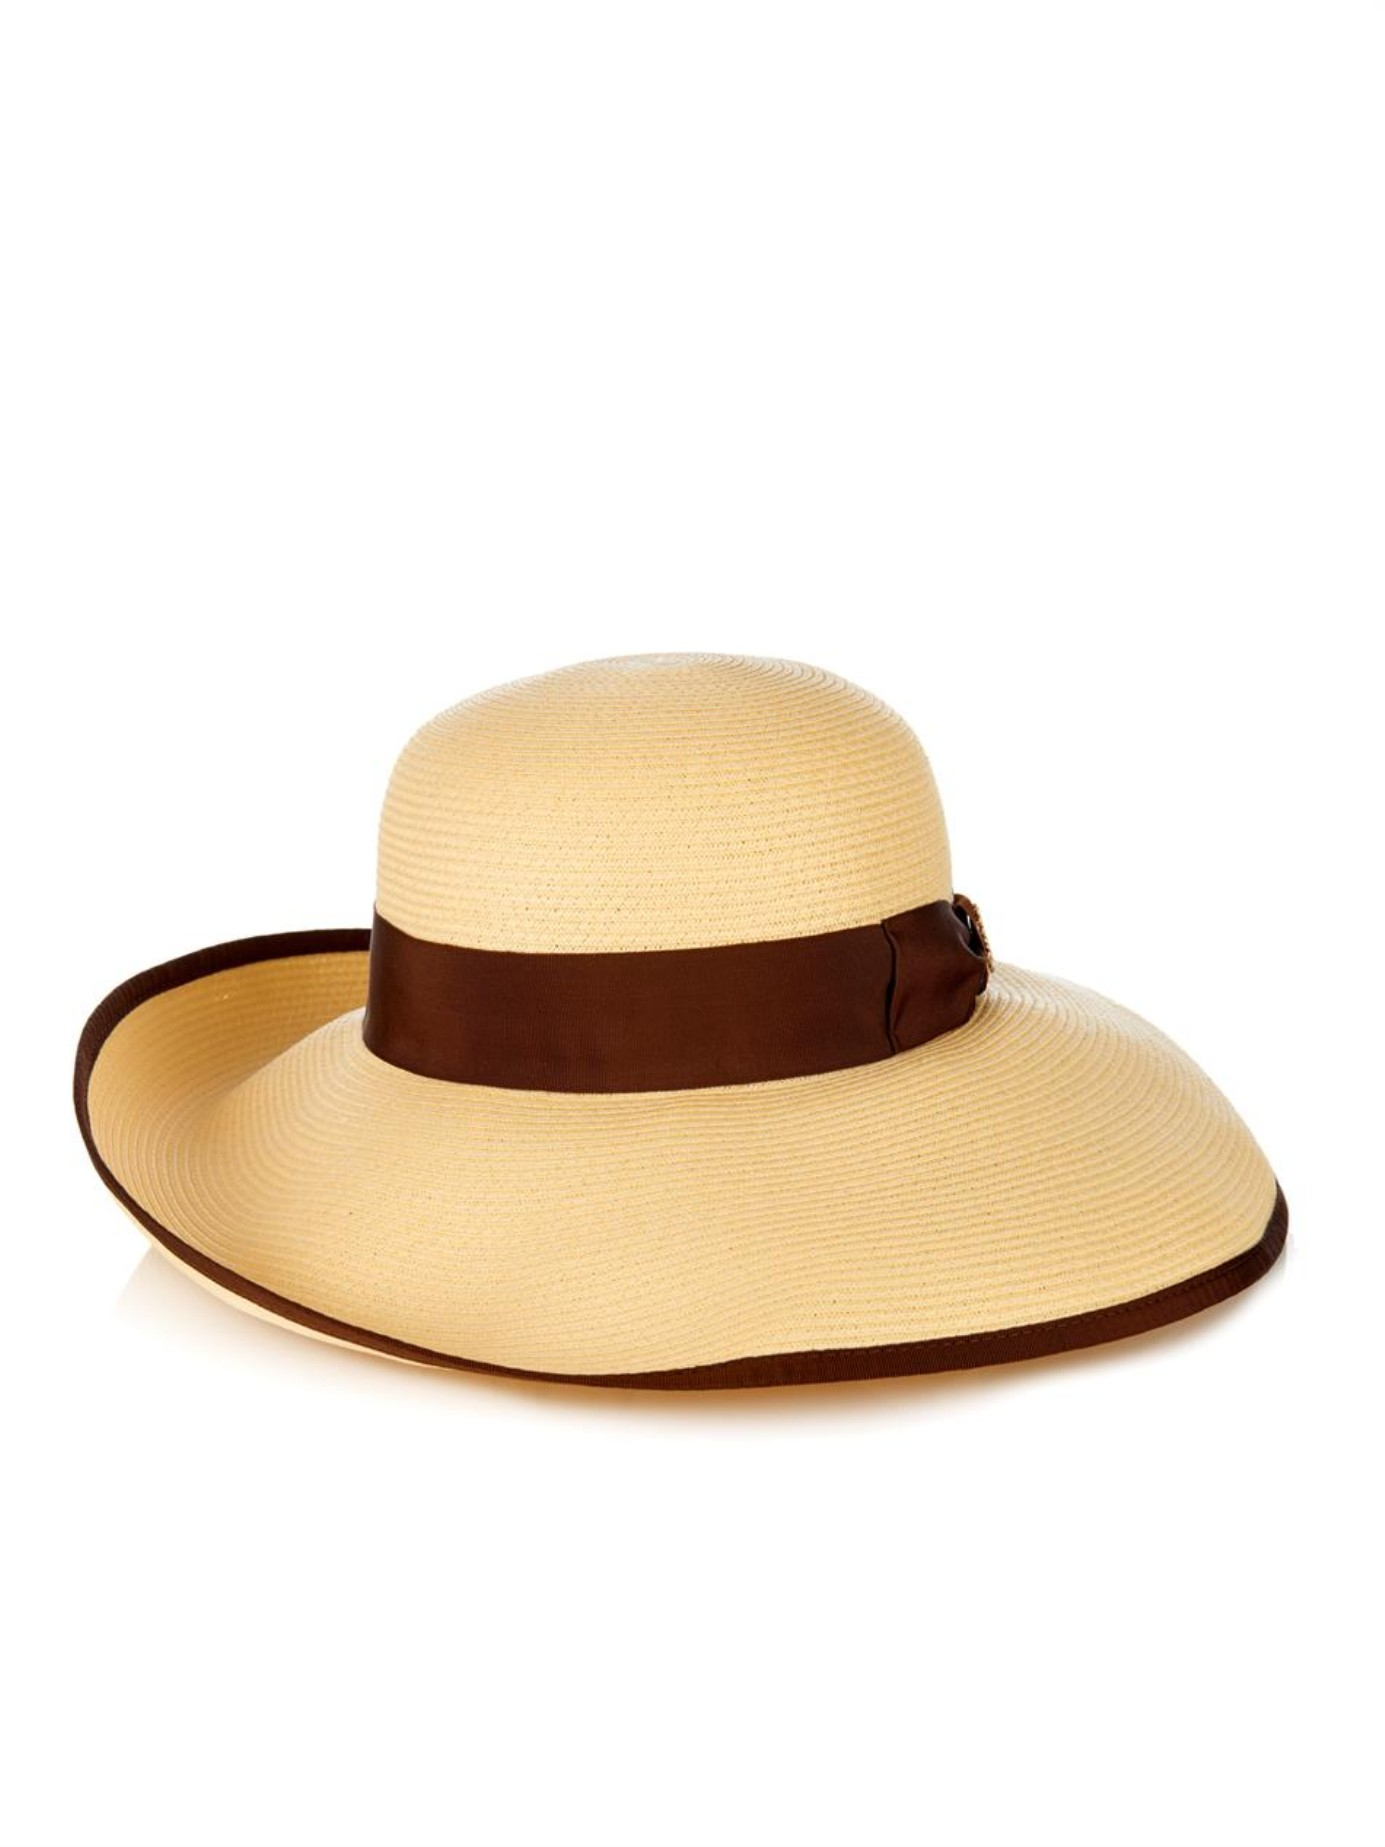 83ea6a6eb4d Lyst - Gucci Natural Straw Wide-Brimmed Hat